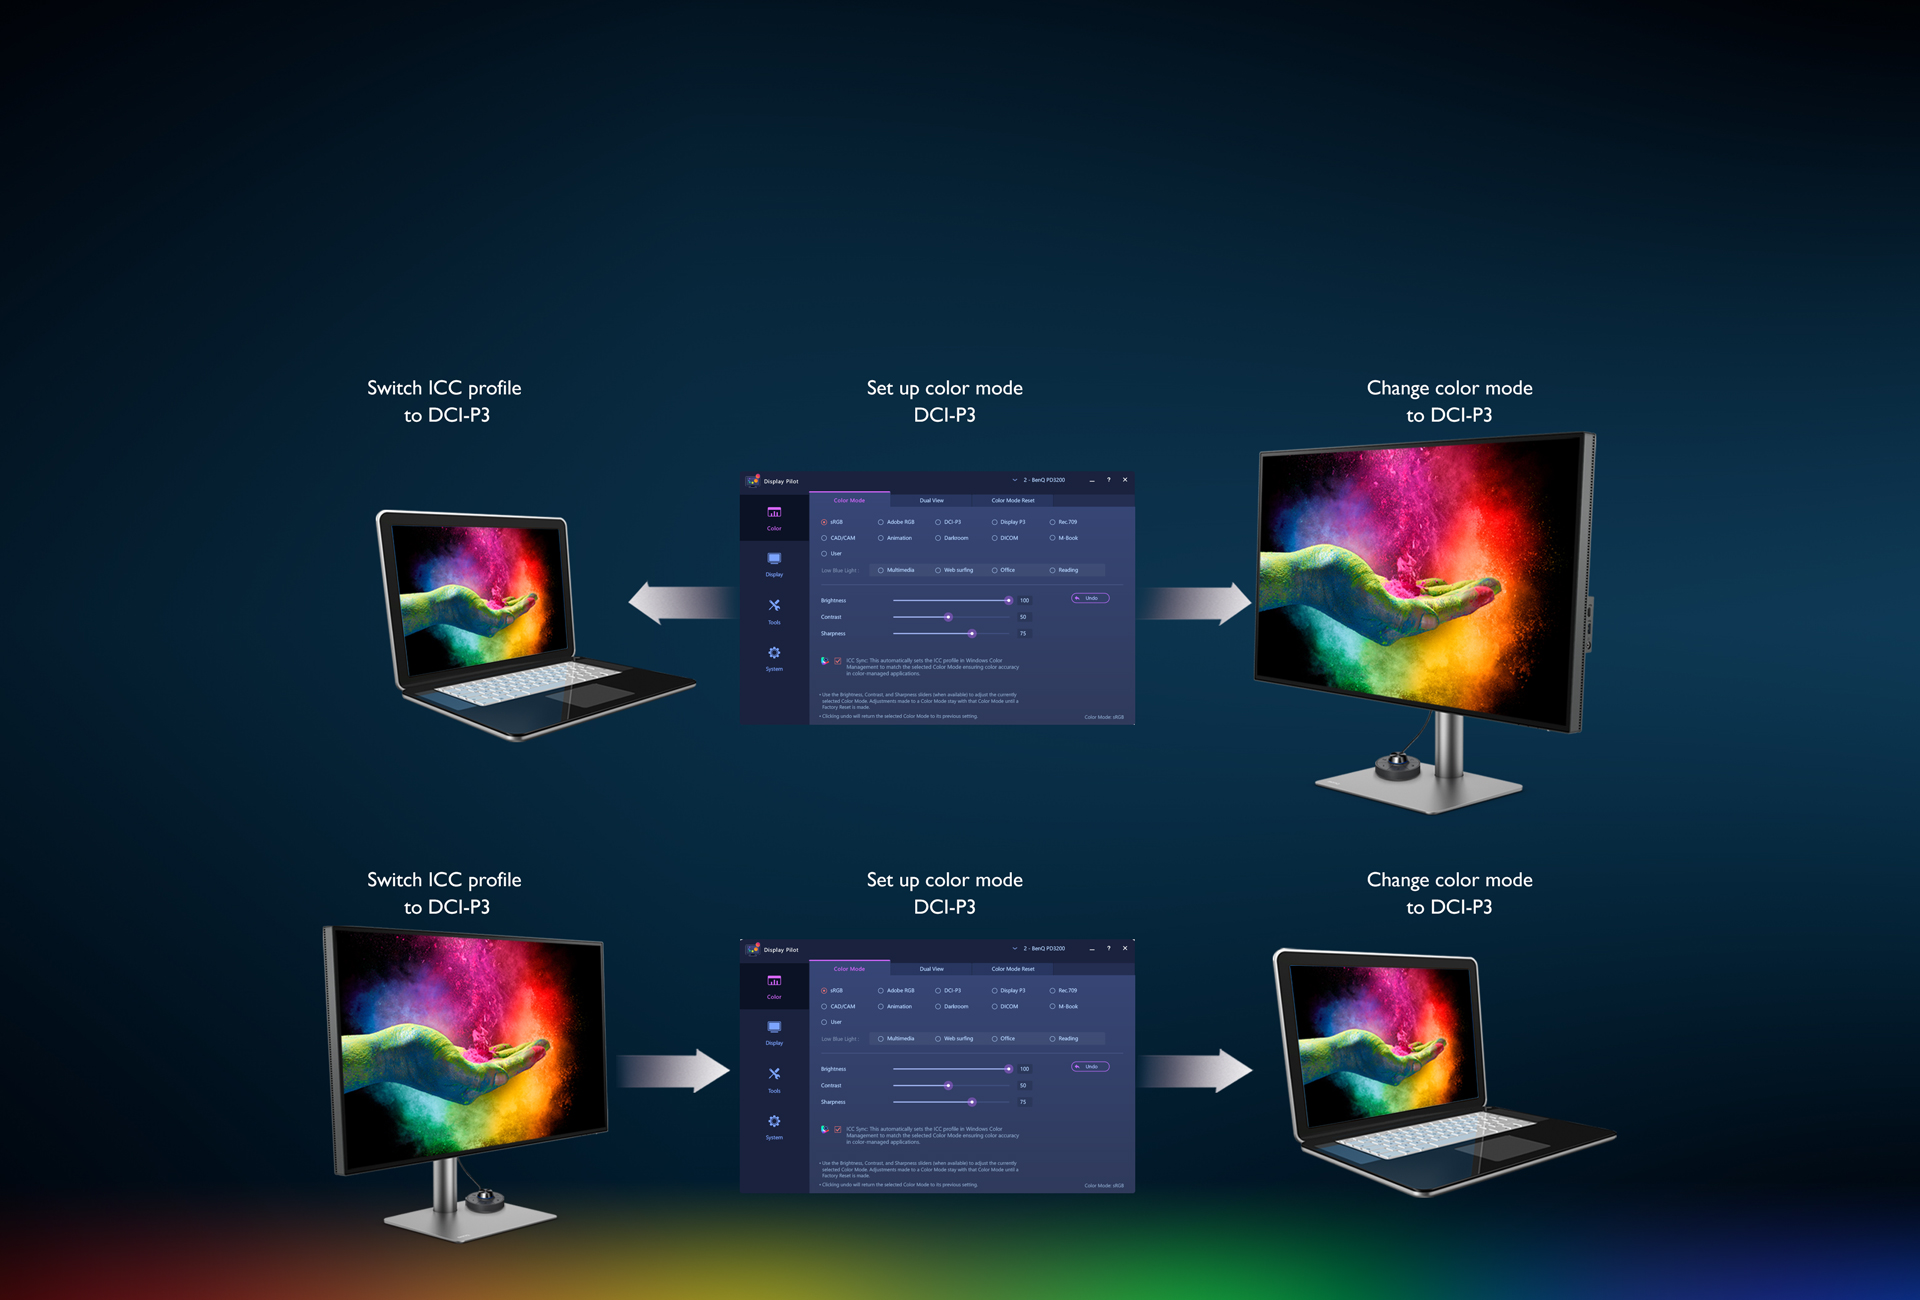 BenQ 4K USB-C Monitor for Macbook Pro PD3220U helps designers effortlessly complete the steps of matching the ICC profiles between monitors and computers.